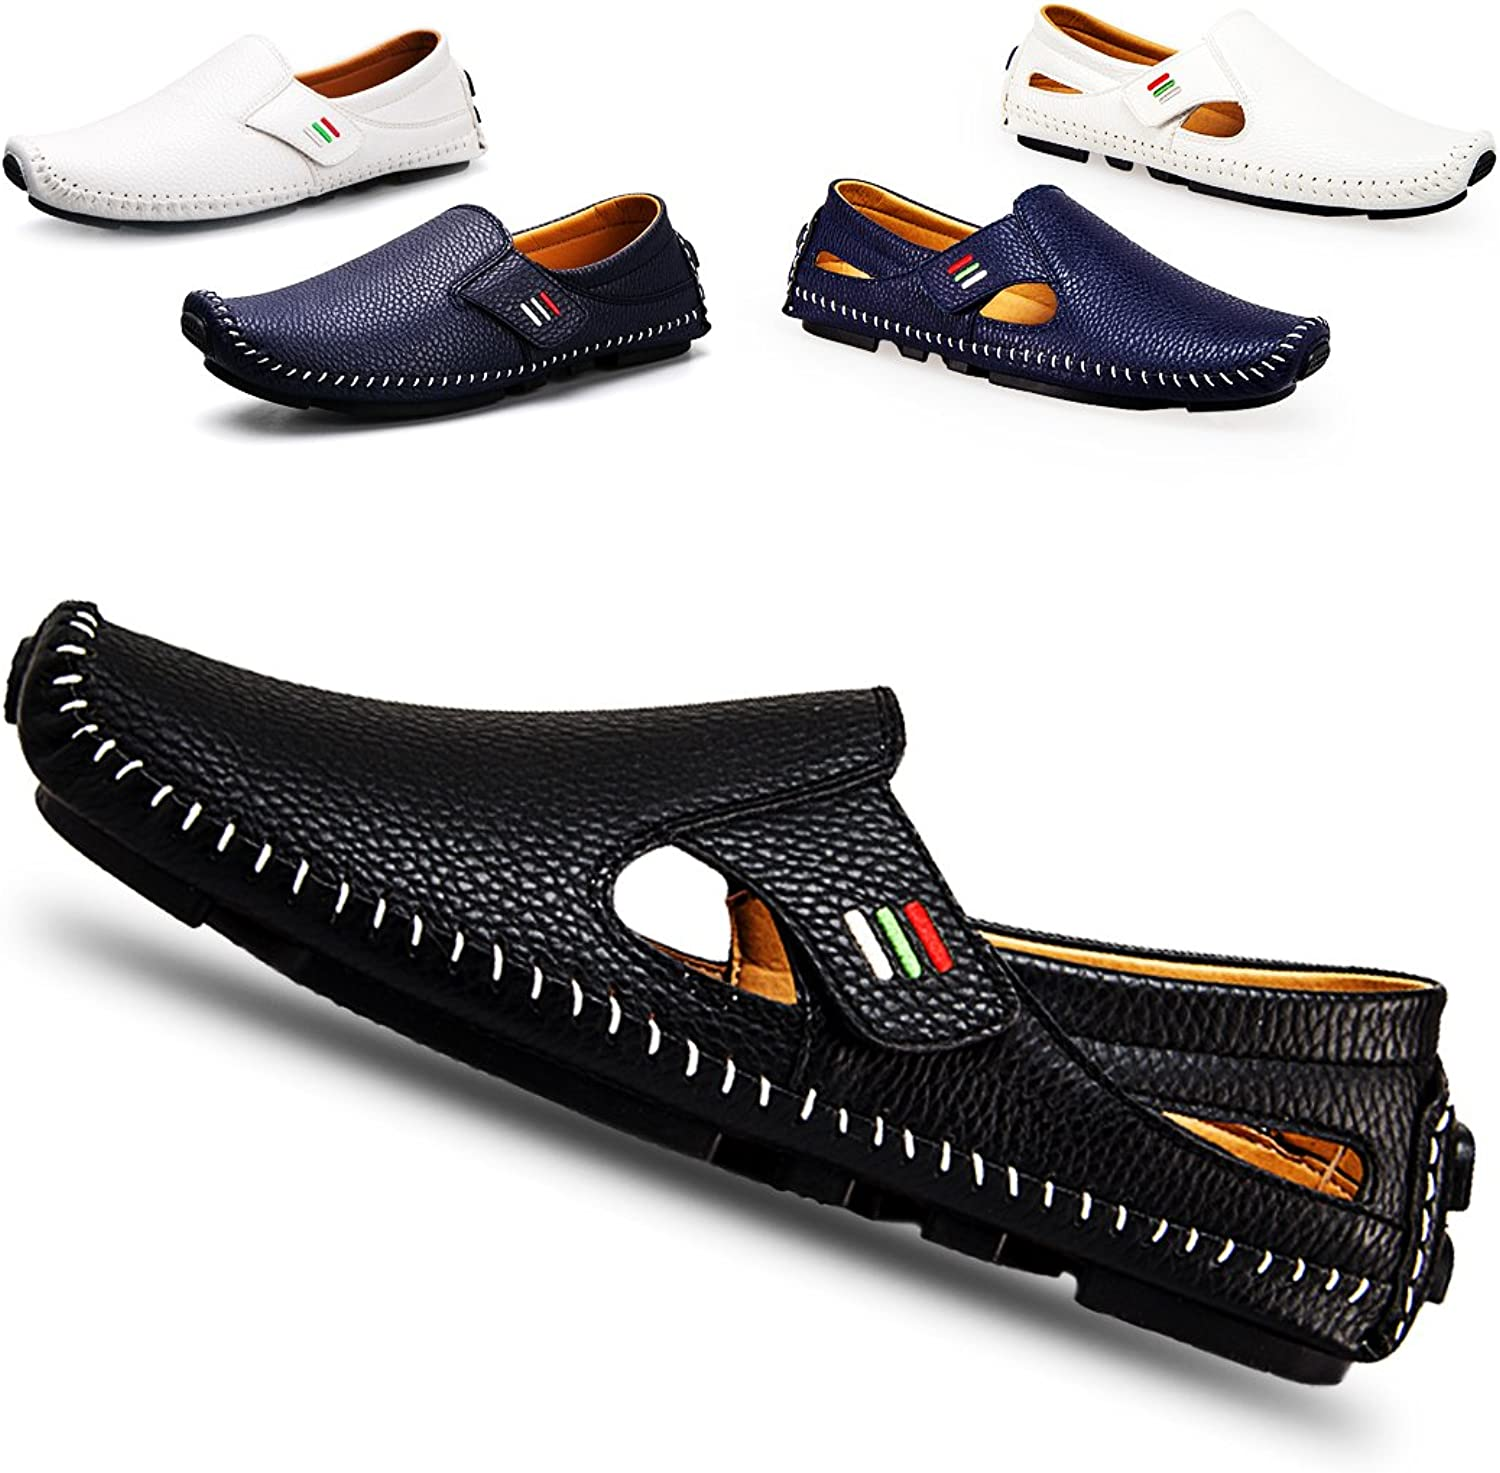 Ceyue Men's Driving shoes Penny Loafers Casual Leather Stitched Loafer shoes